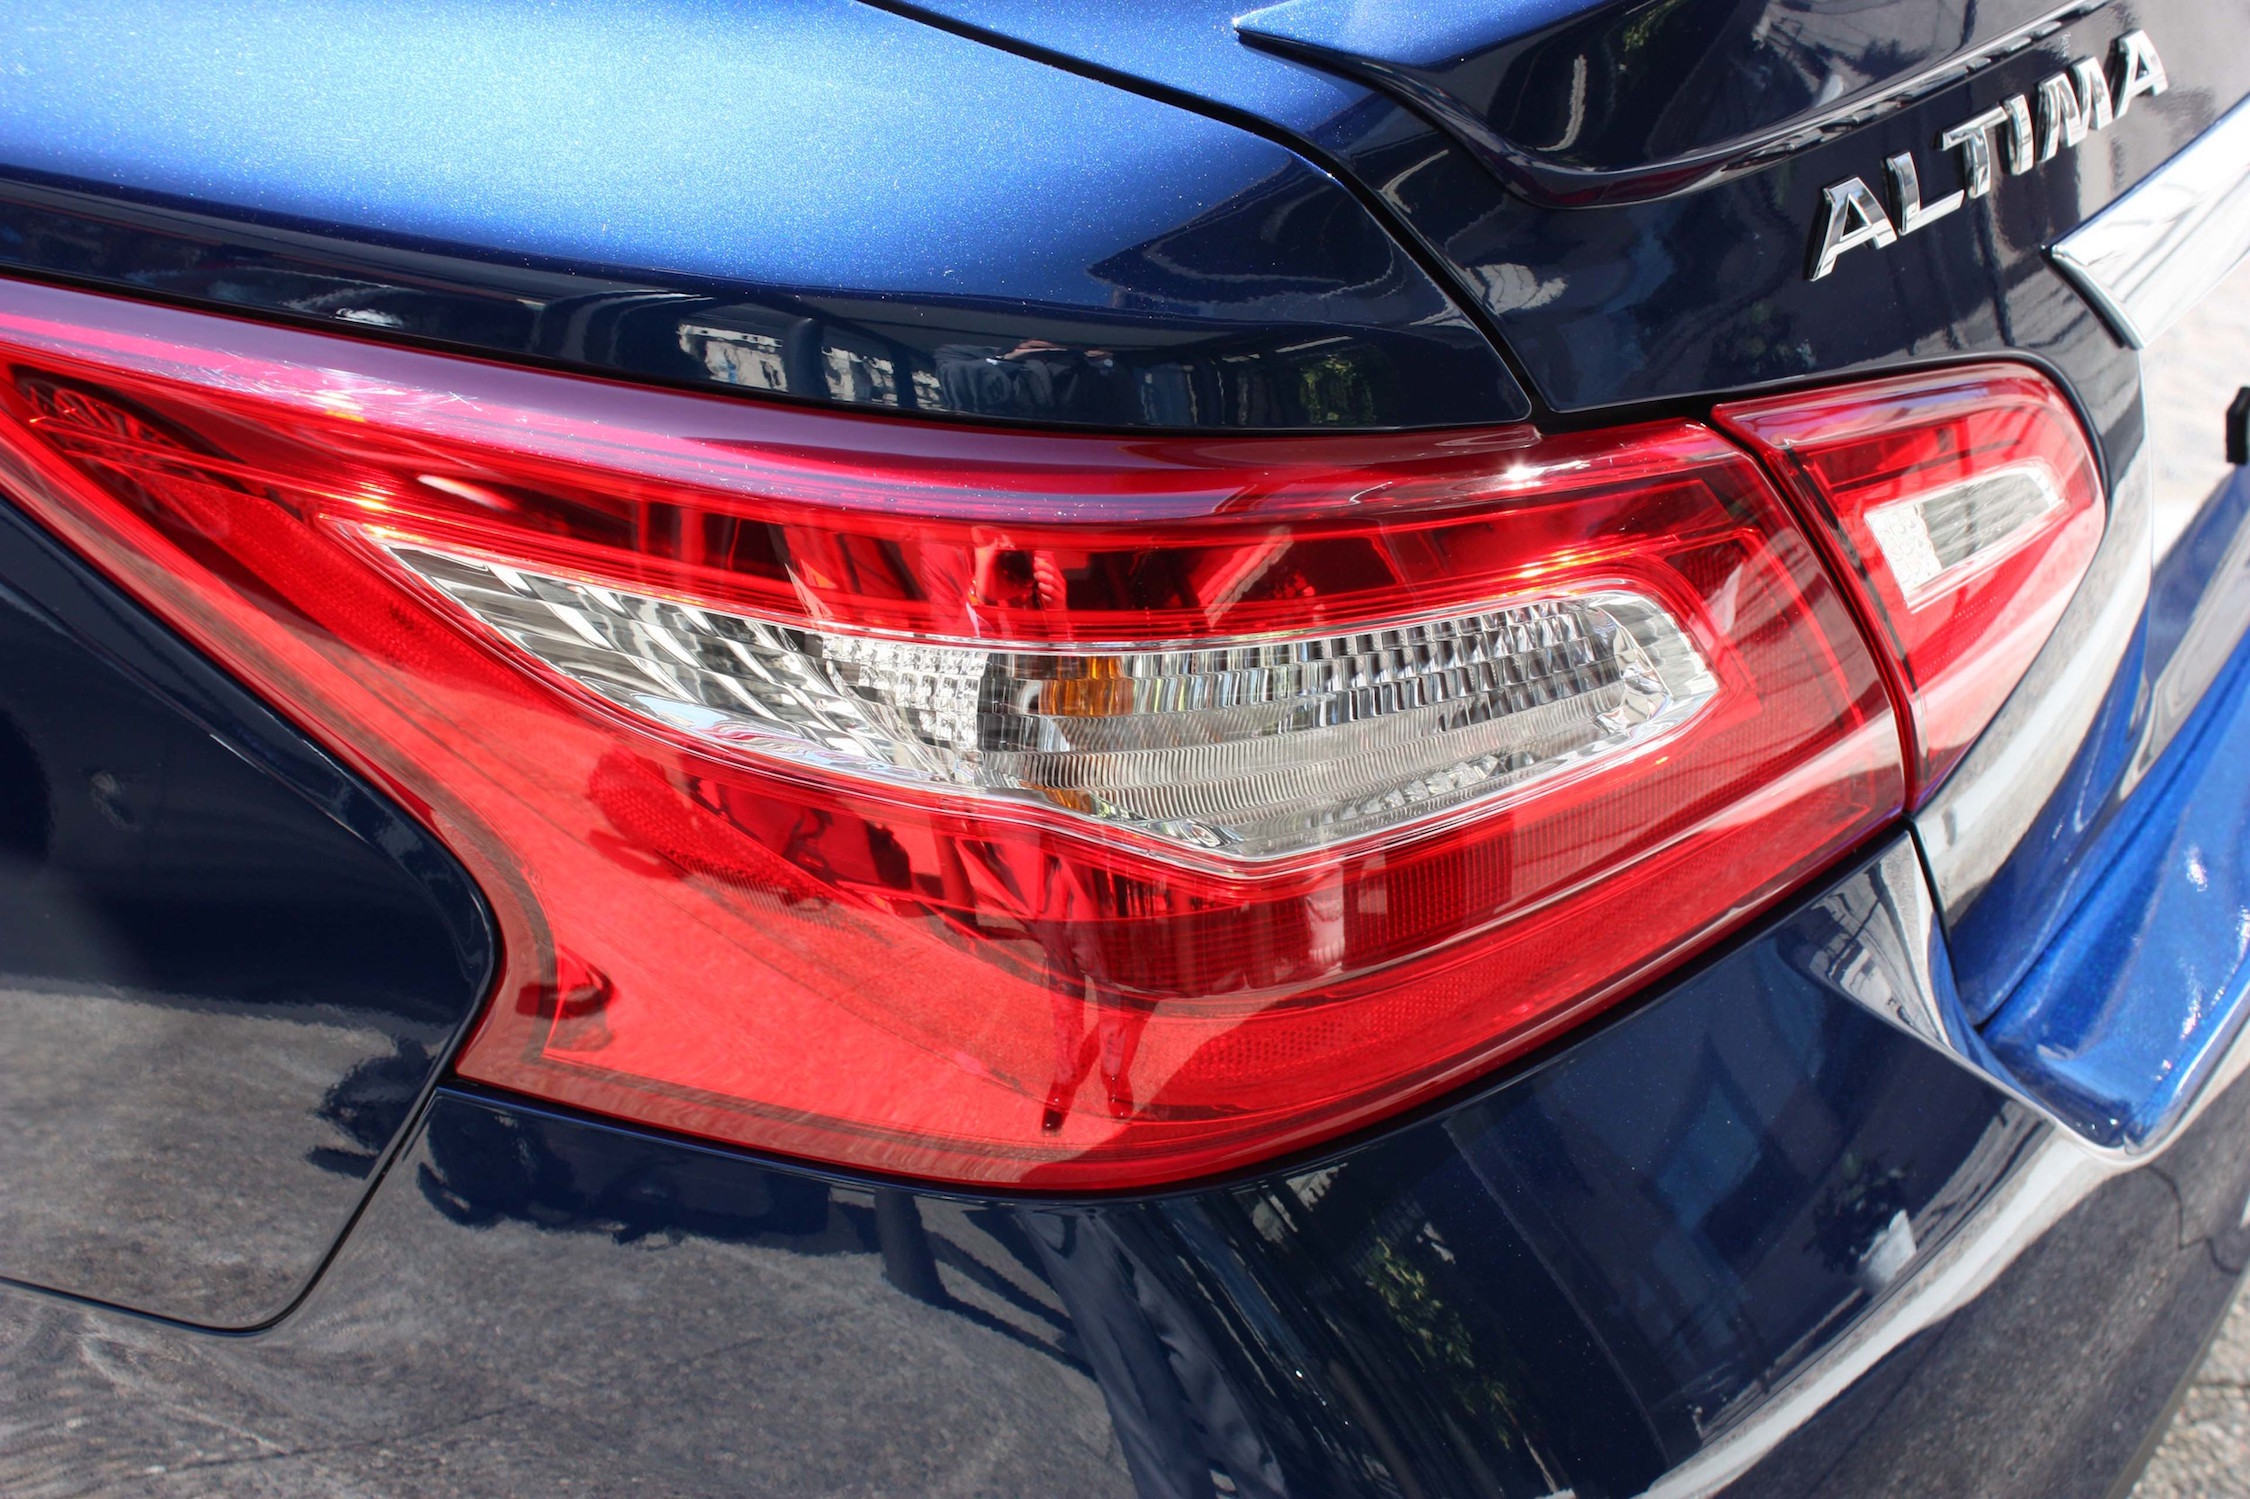 2016 Nissan Altima Exterior Taillight (Photo 18 of 20)